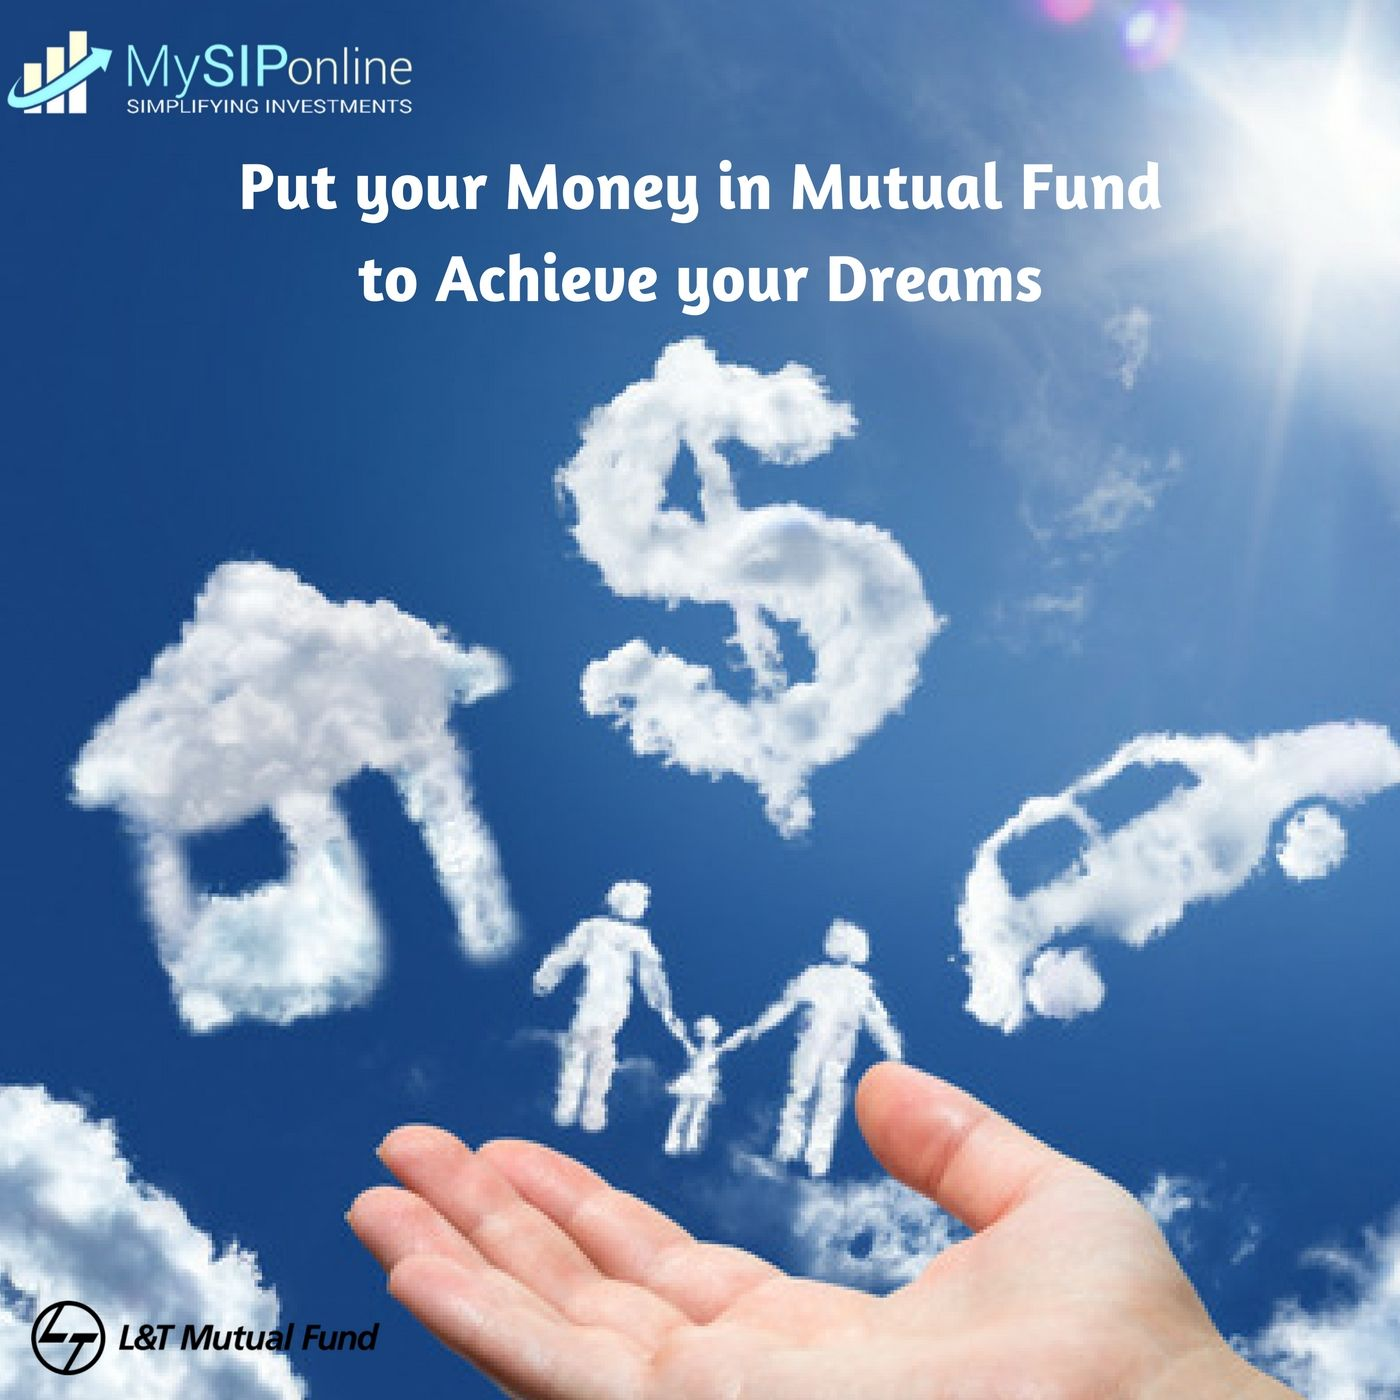 Start Your Investment In L T Mutual Funds At My Sip Online To Get Every Possible Solution For Your Mutual Funds Inv Budgeting Money Personal Loans Budgeting